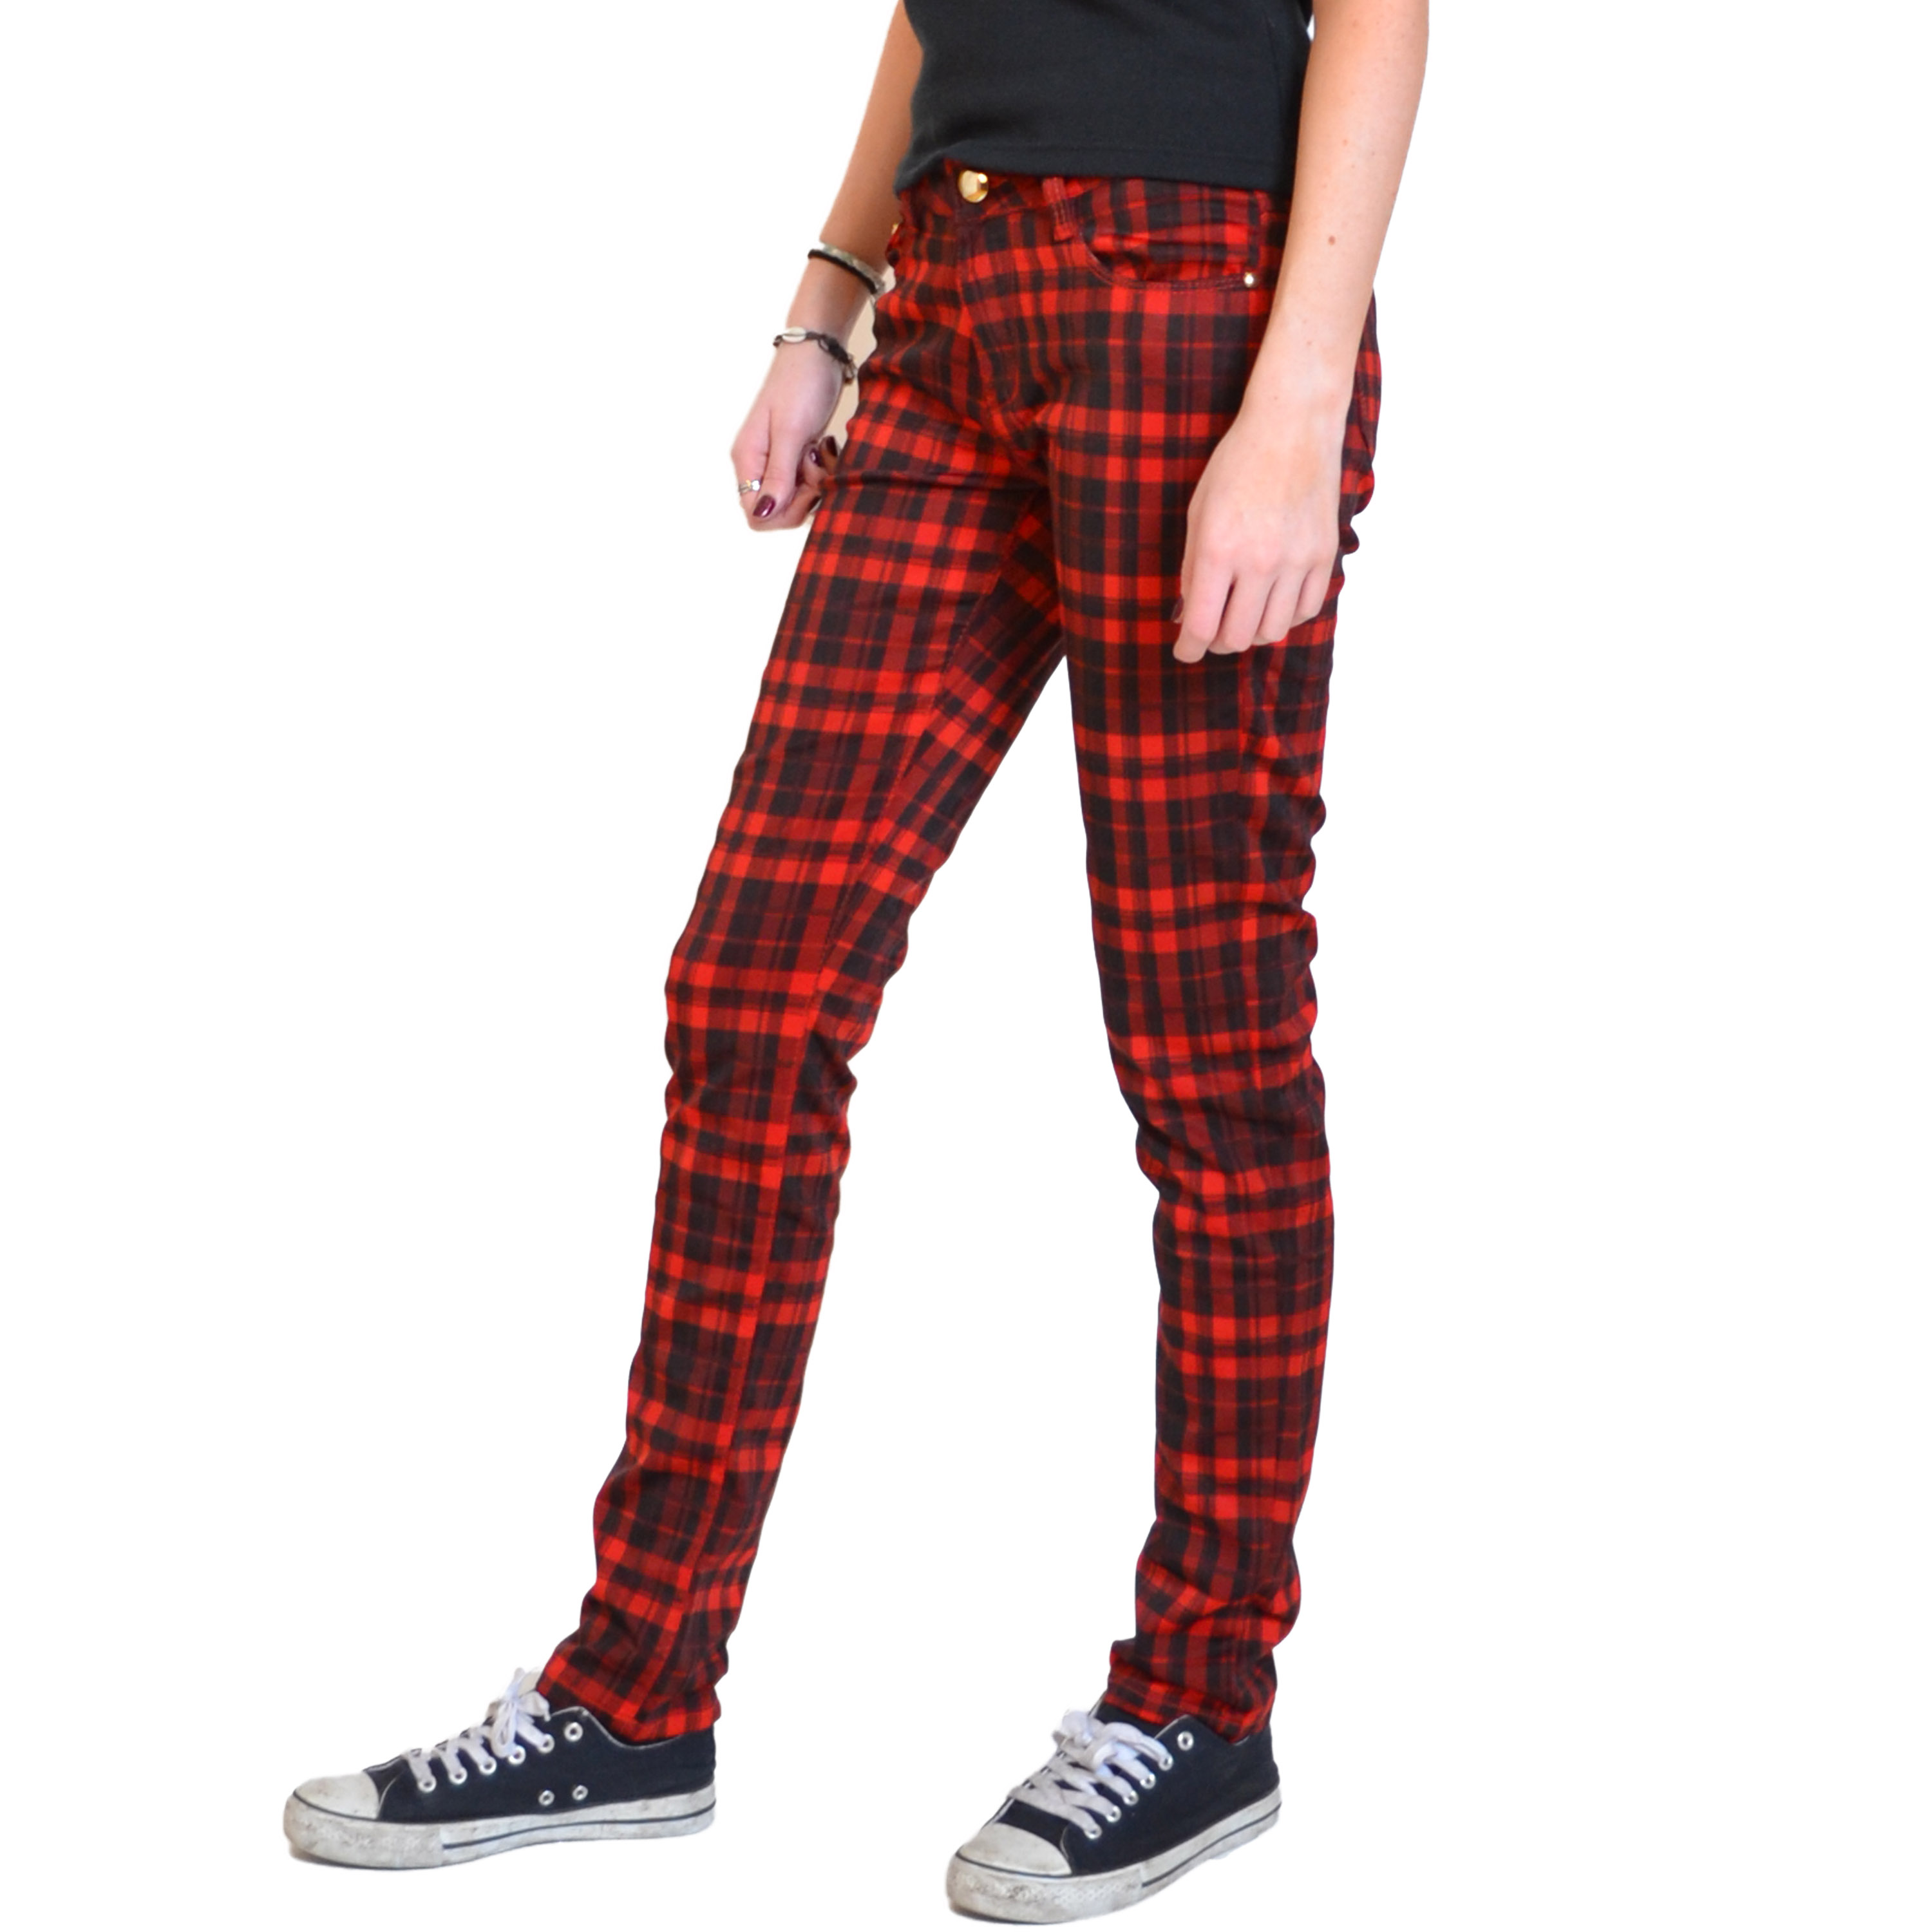 new ladies womens red black tartan check pants red plaid punk trousers jeans. Black Bedroom Furniture Sets. Home Design Ideas